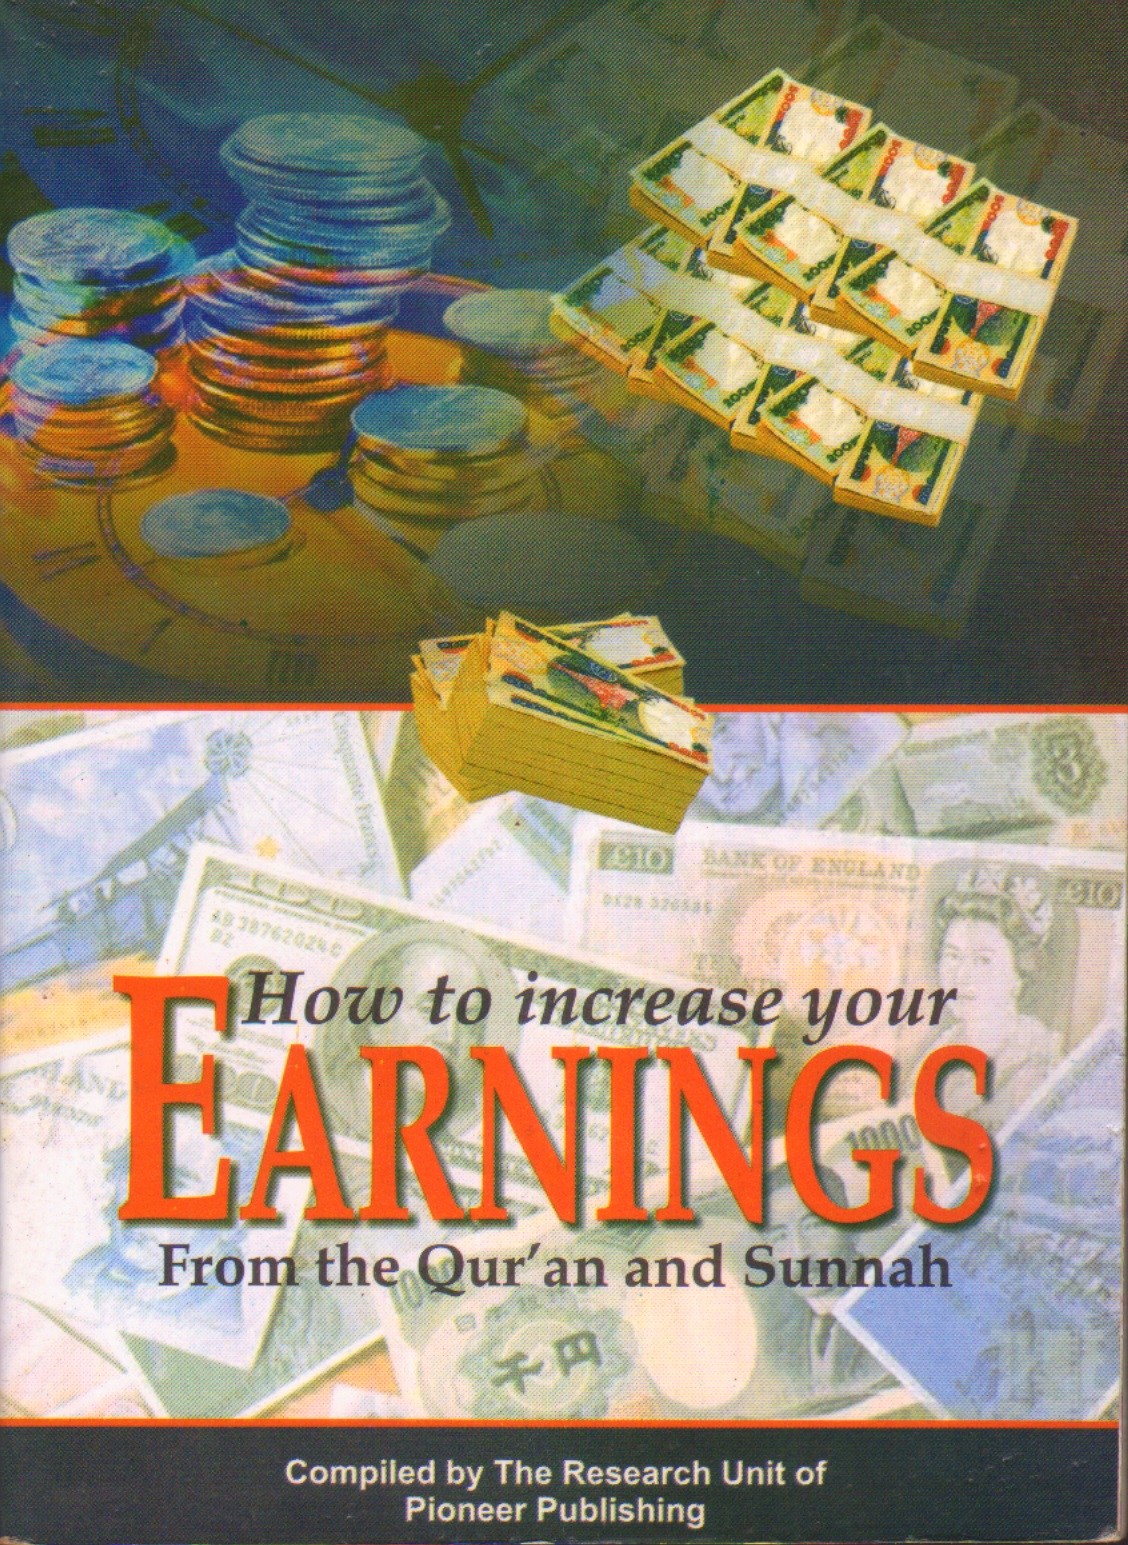 How to increase your Earnings From the Quran and Sunnah